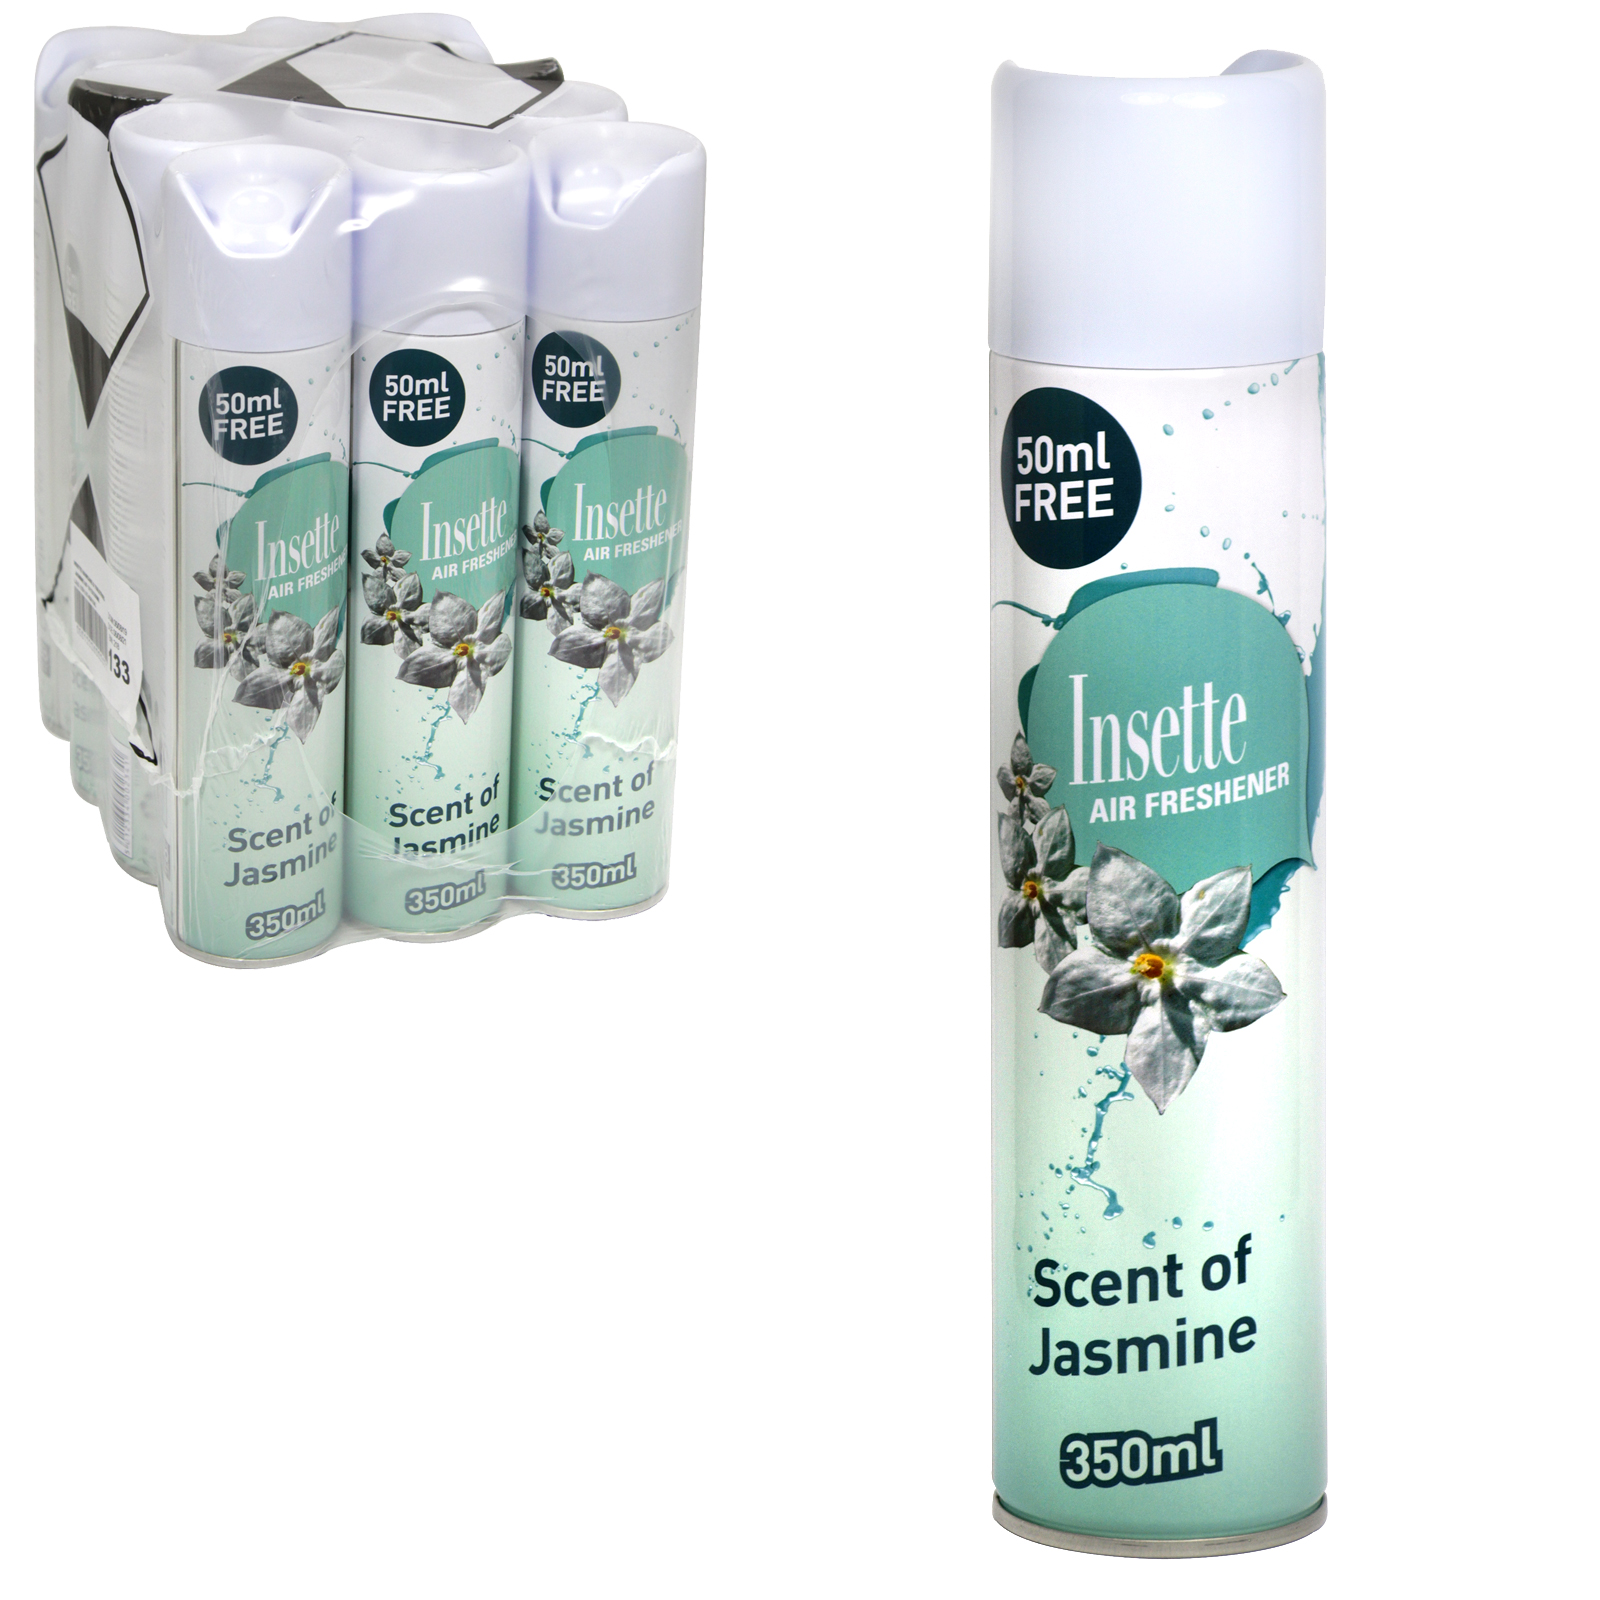 INSETTE AIRFRESHENER 350ML SCENT OF JASMINE X12